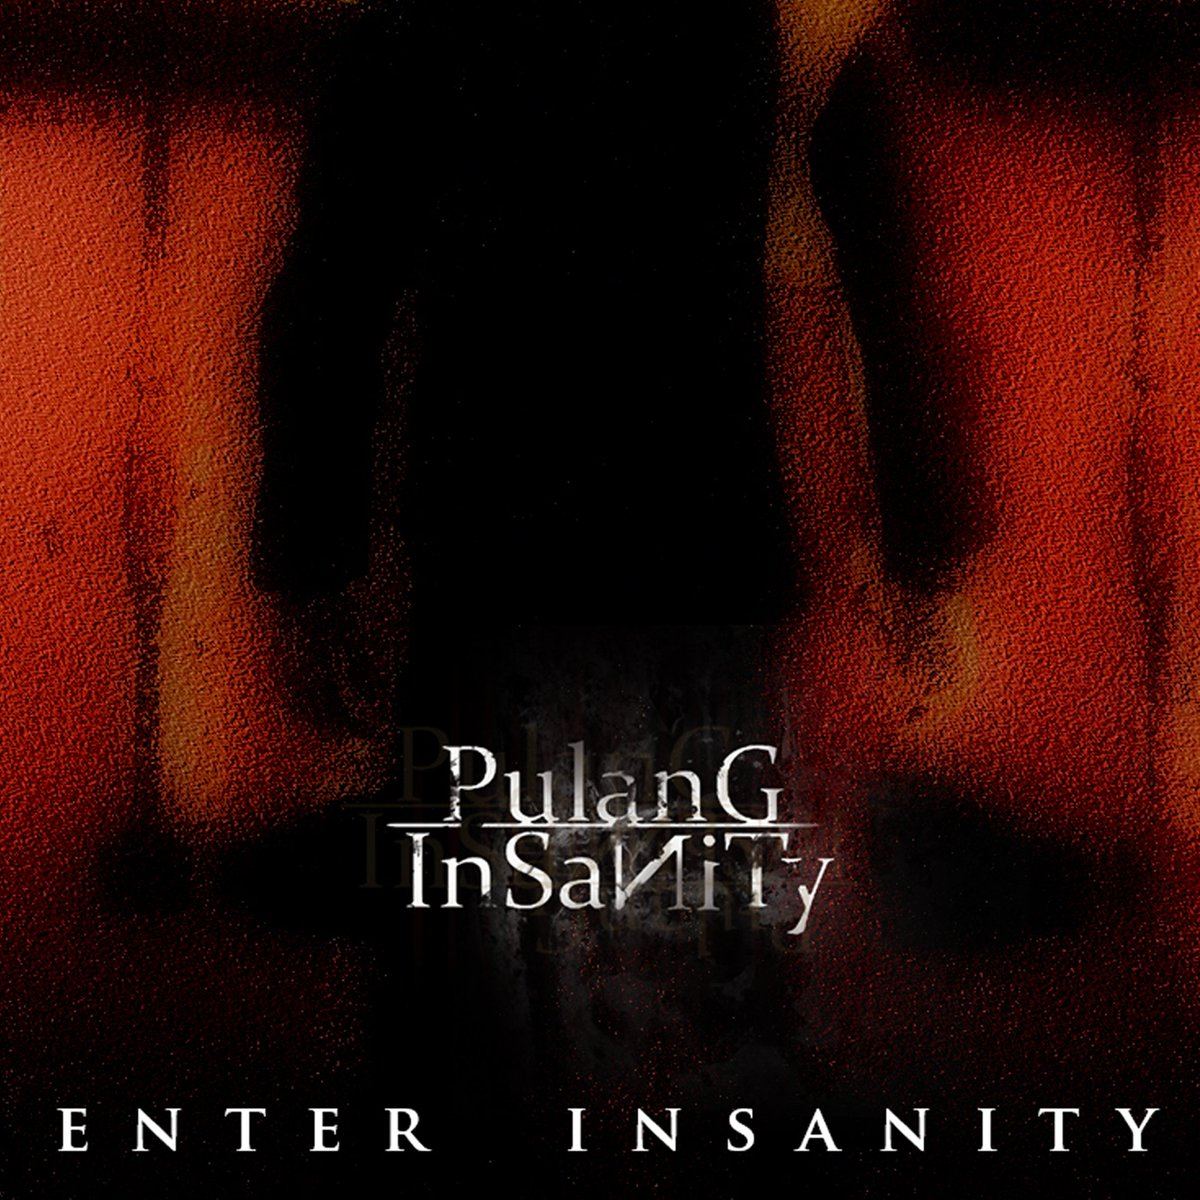 WISHLIST & PLAY THE DEMO NOW https://store.steampowered.com/app/1069210/Pulang__Insanity/ …  Website : http://pulanginsanity.com/   #EnterInsanity #ComingSoon #Games #Steam #Indonesia #horror #SurvivalHorror #PsychologicalHorror #pulanginsanity #NewDemoUpdatepic.twitter.com/gwRG00G7HF